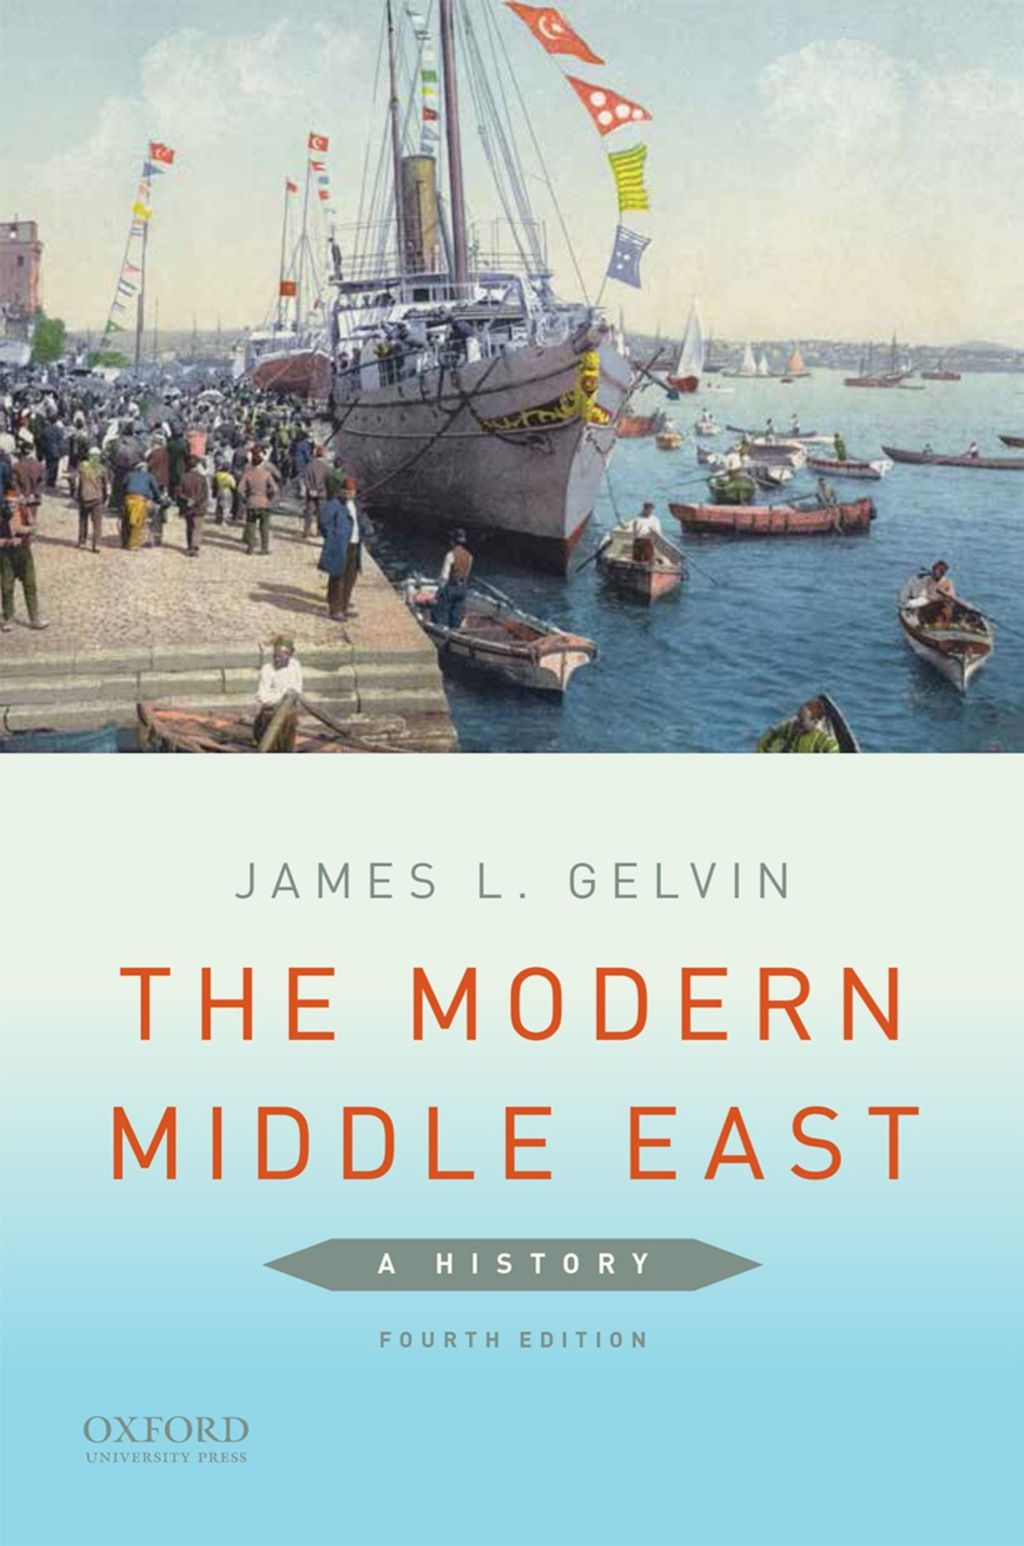 The Modern Middle East Ebook Rental Franklin Books History Books